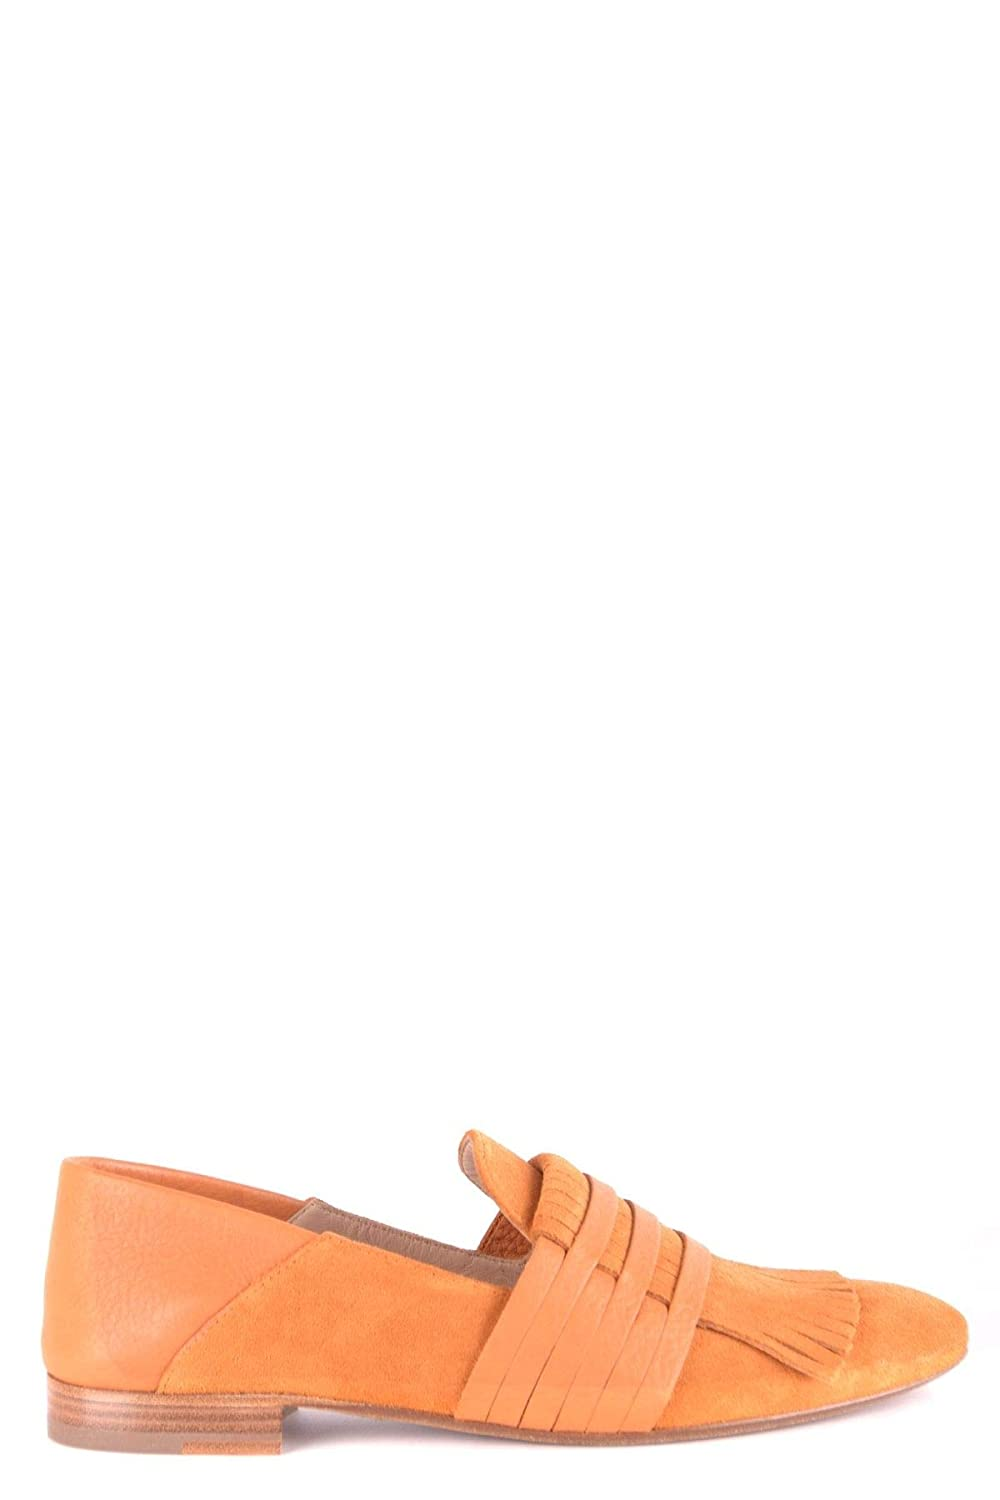 - FRATELLI ROSSETTI Women's MCBI35176 orange Suede Loafers